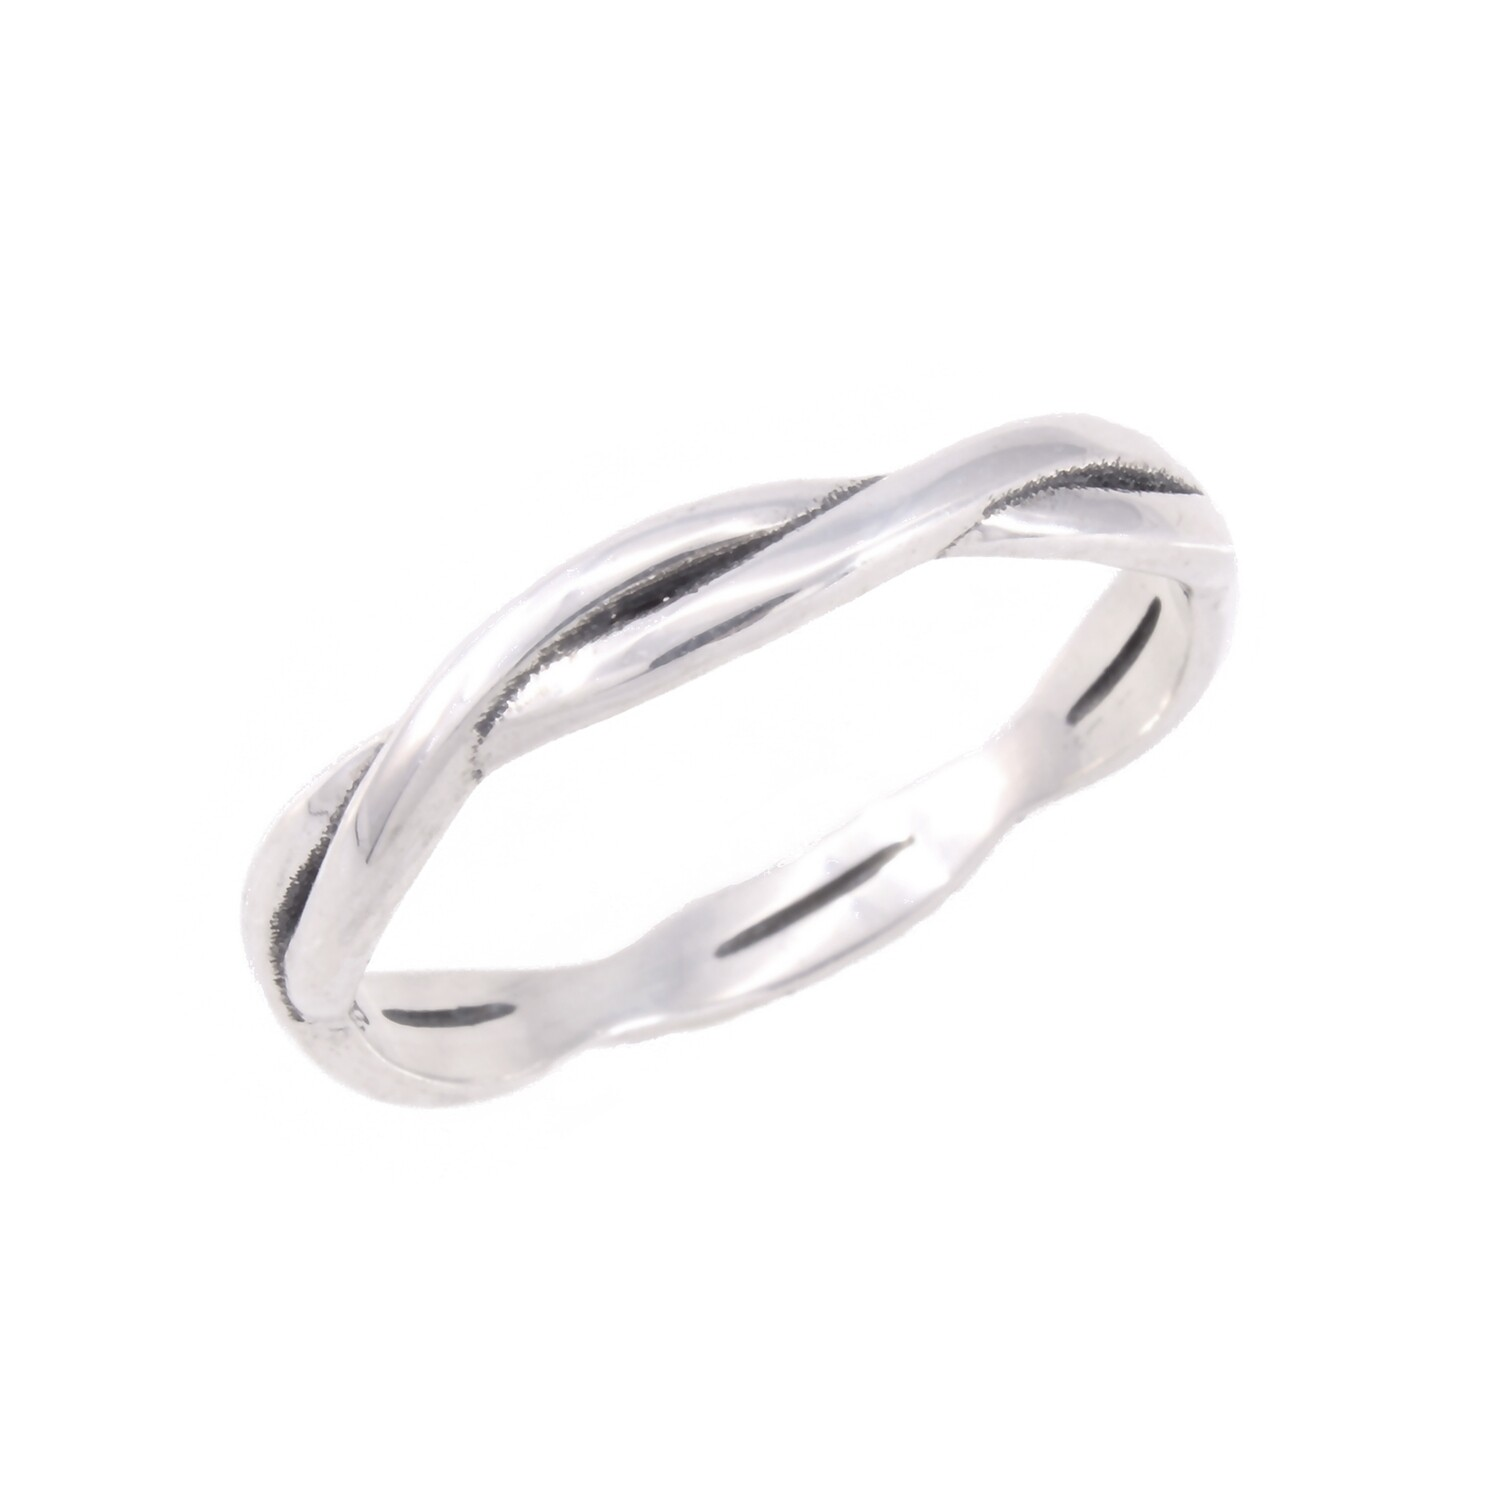 RP3436 Sterling Silver Braid Band Ring